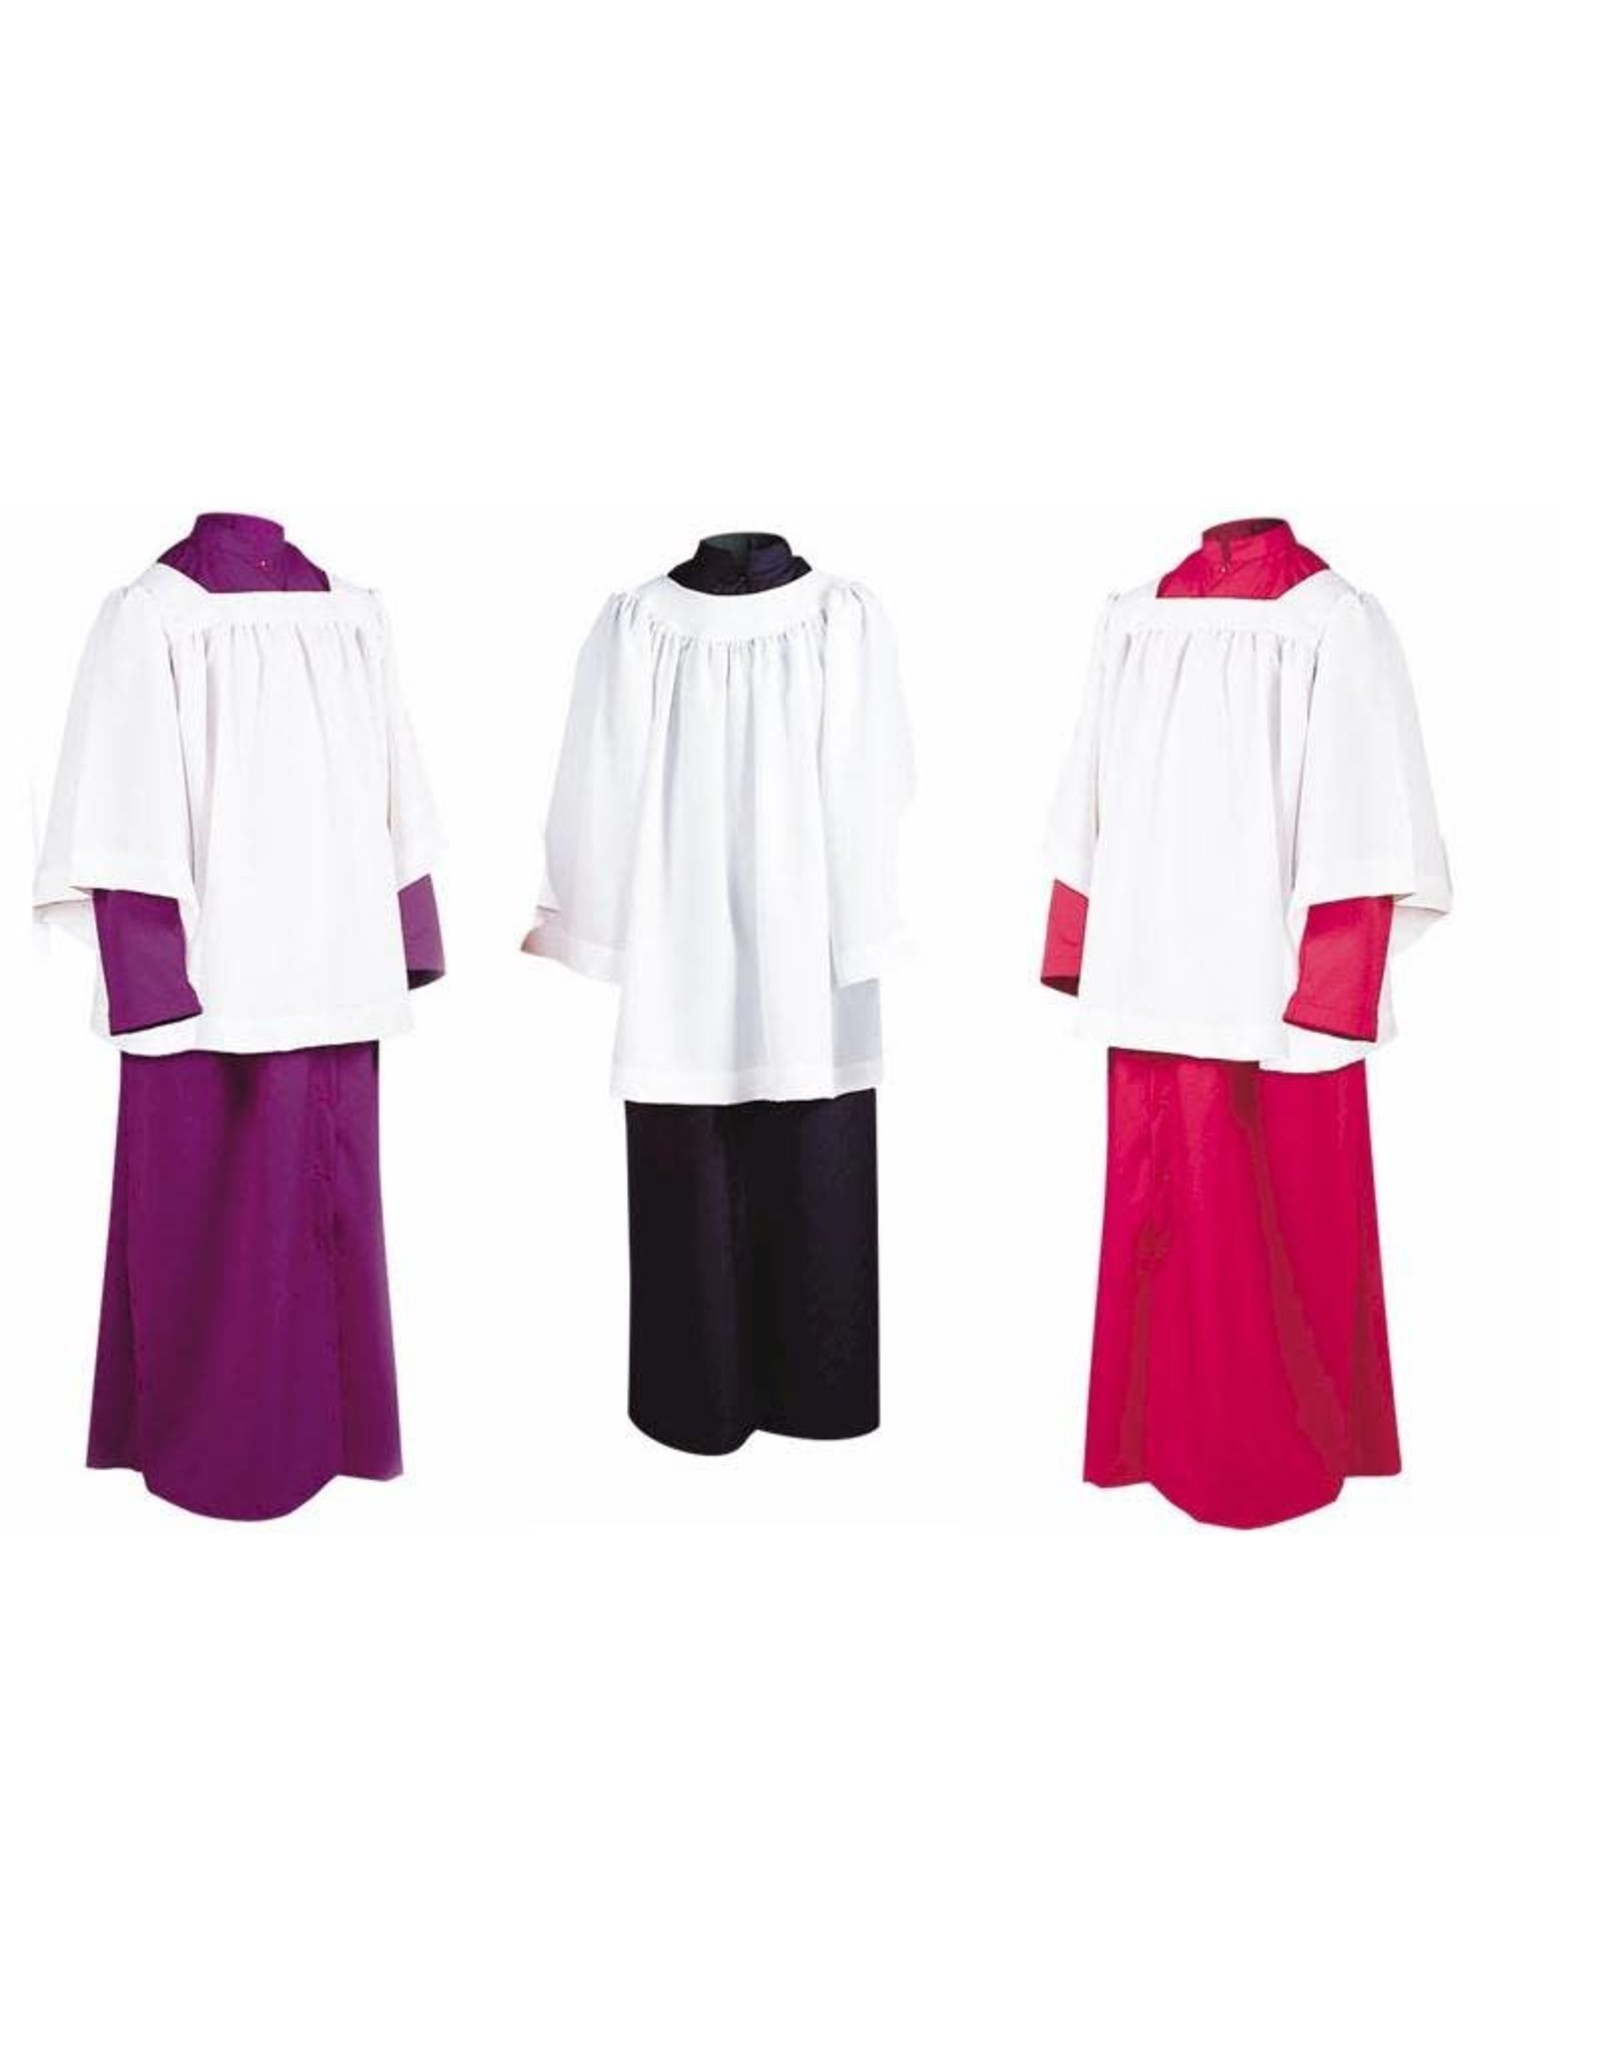 Altar Server Cassock-Available in Red, Black, Purple or White